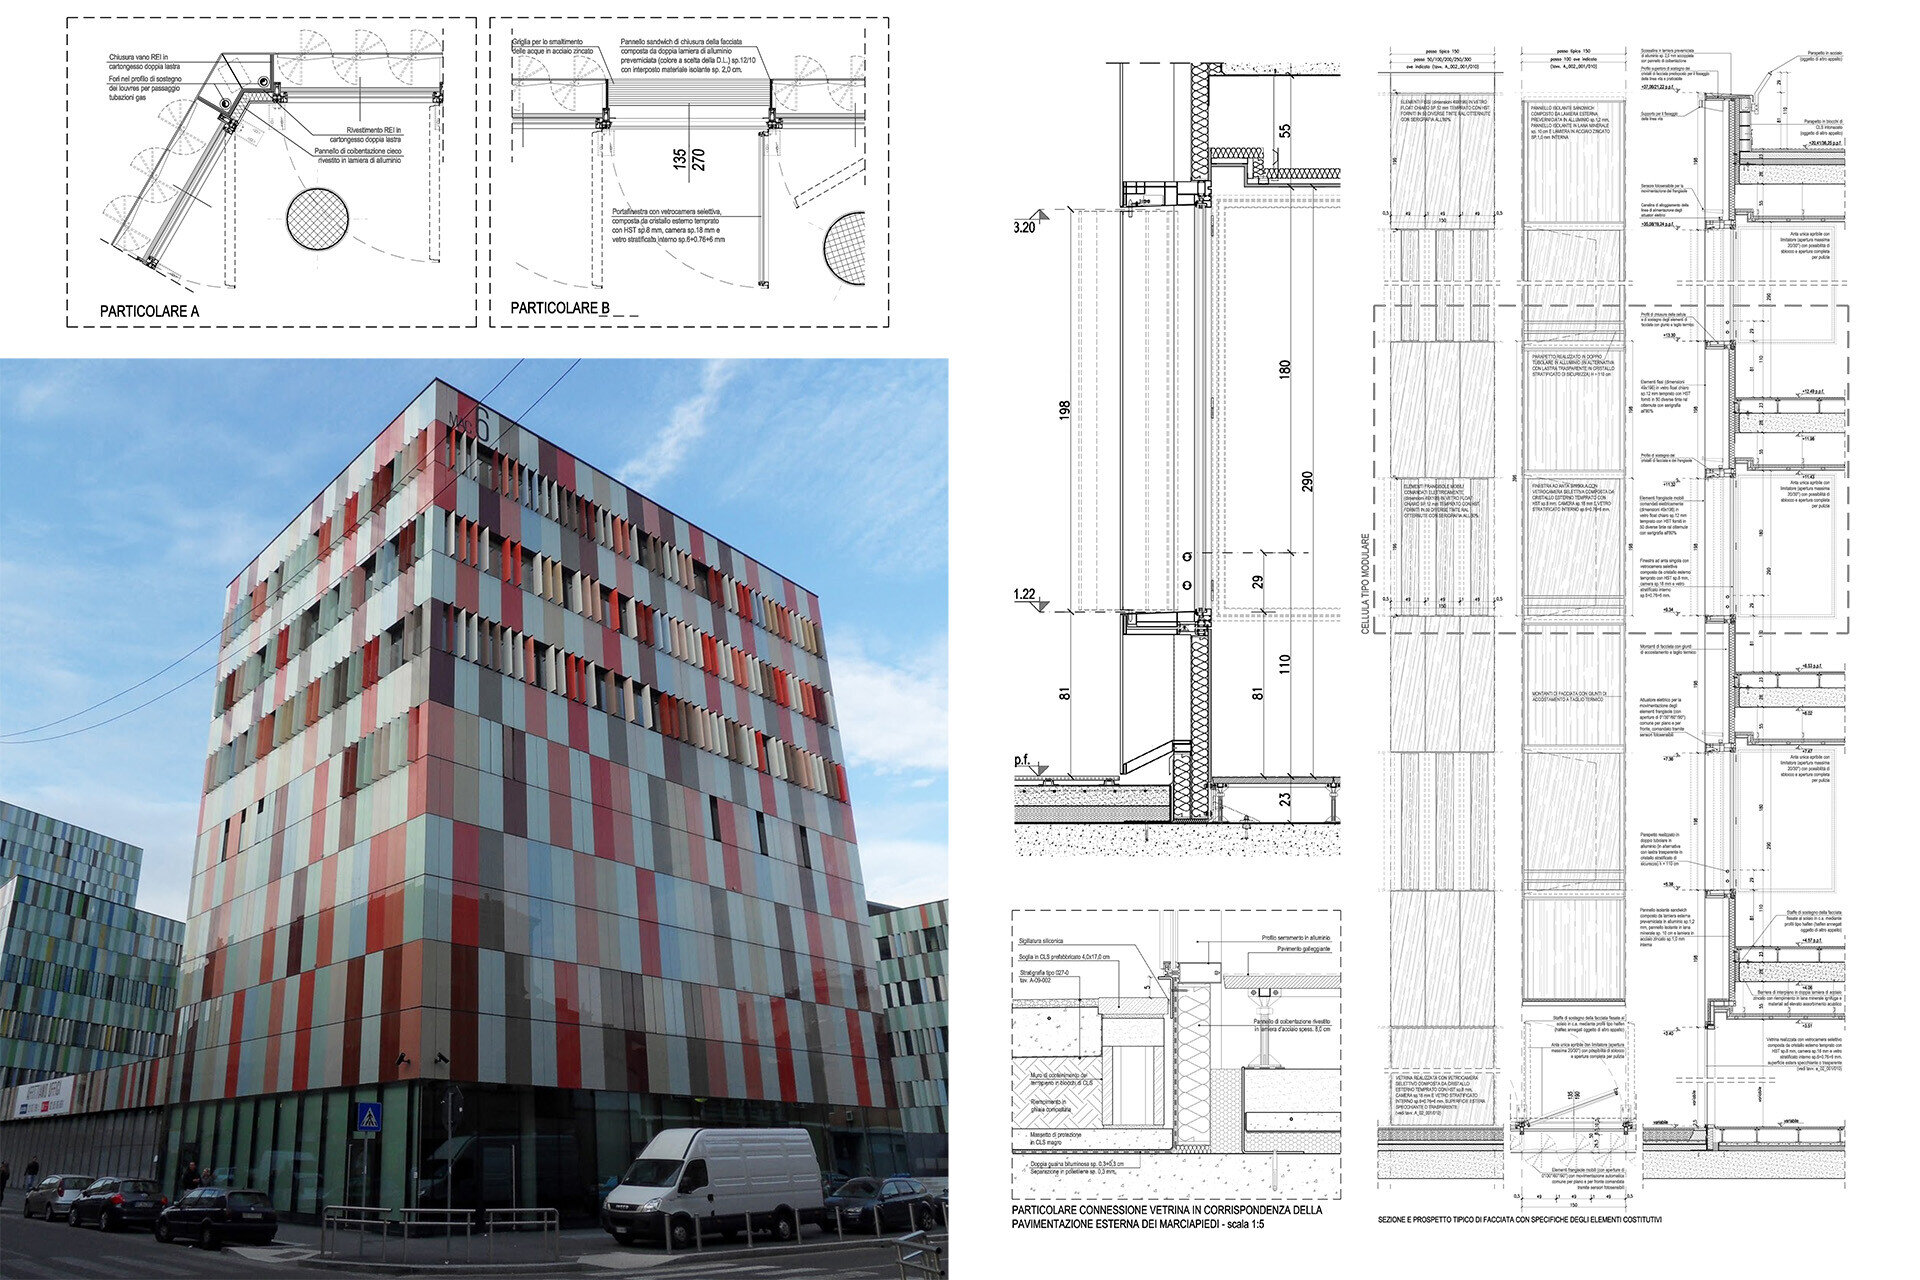 Facade design engineering by SCE Project Macciachini Dettagli